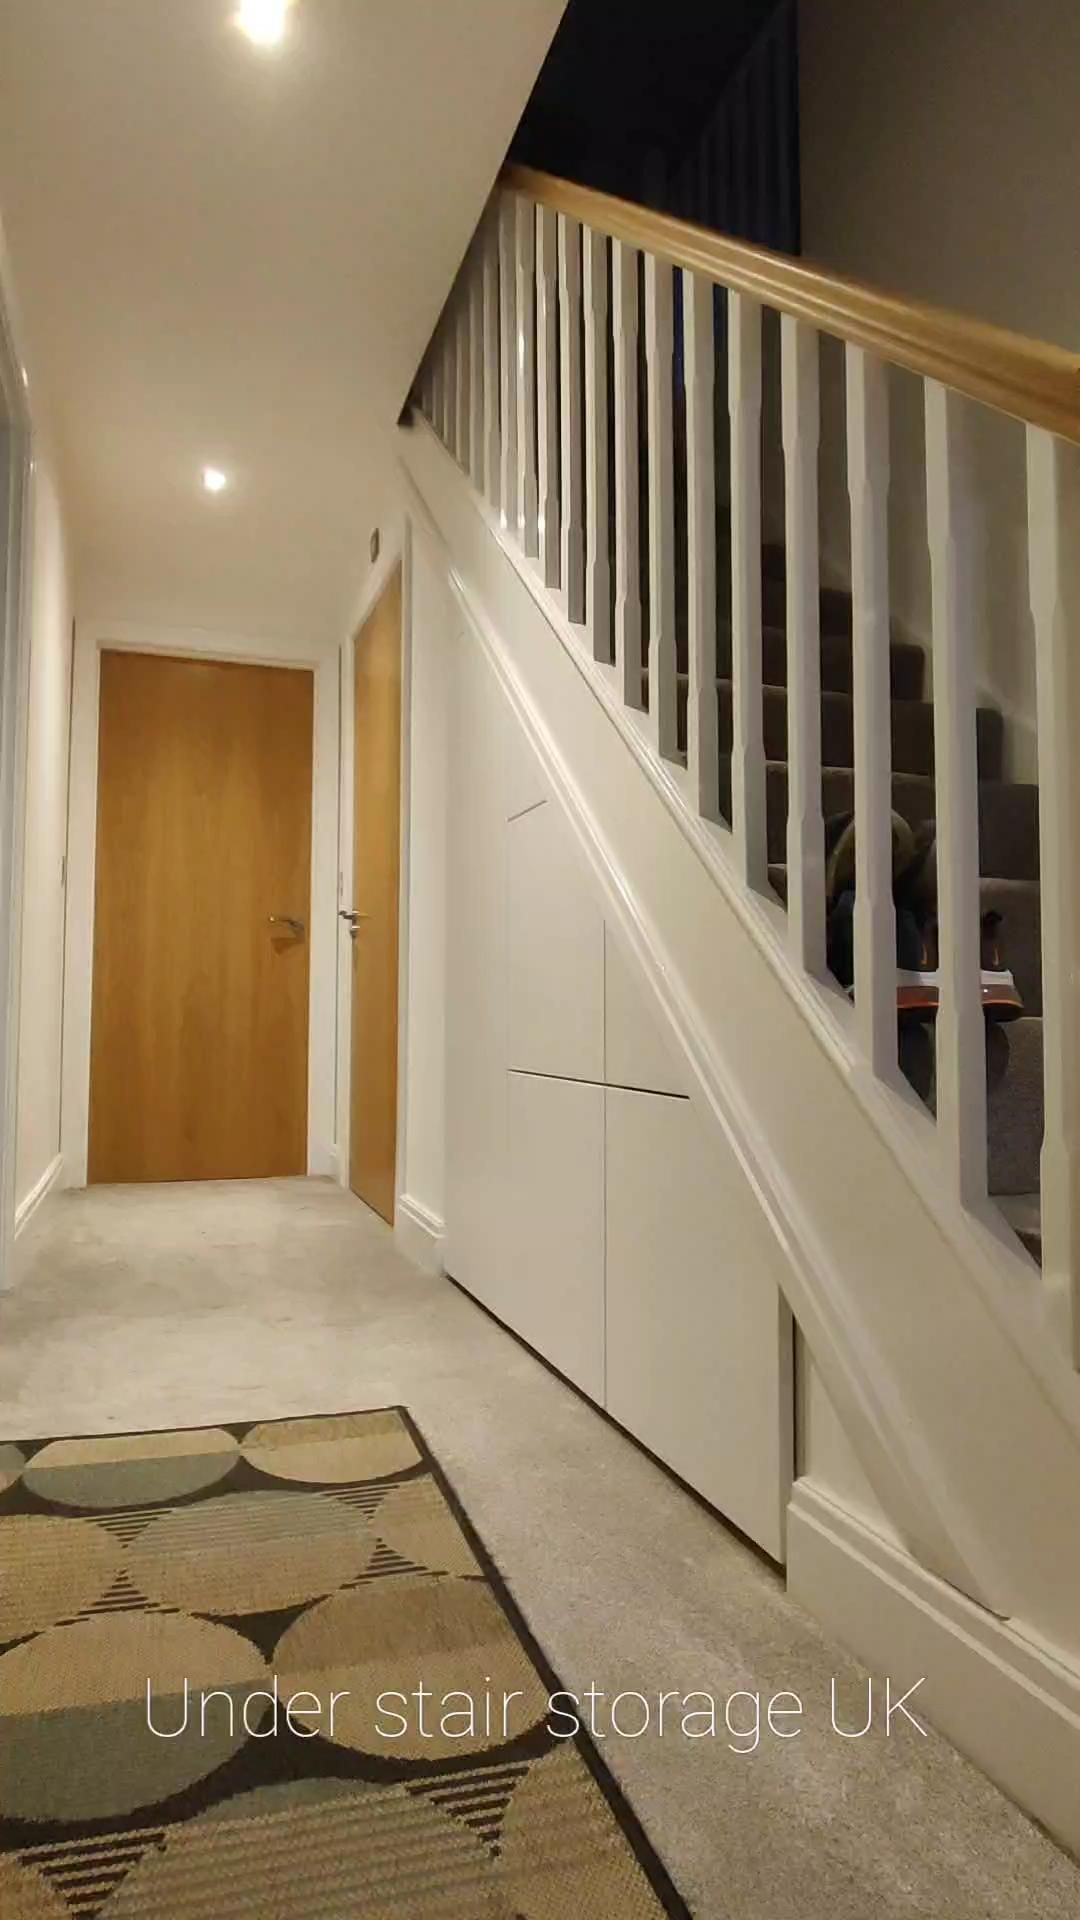 Under Stair Storage solutions supplied and installed in the UK